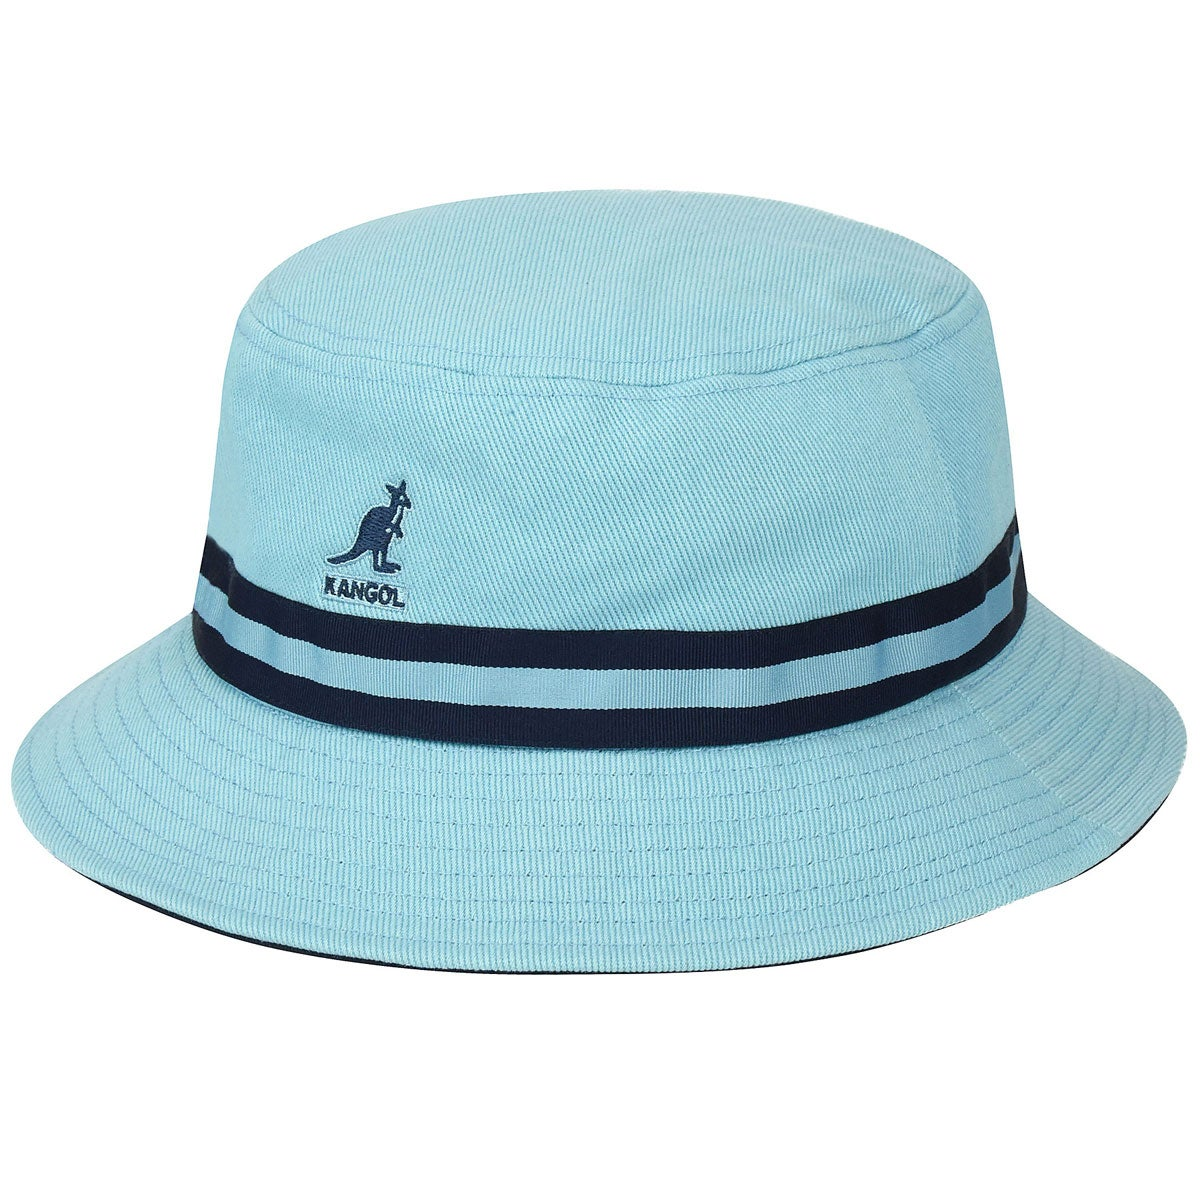 80s Hats, Caps, Visors, Buckets | Women and Men Stripe Lahinch $50.00 AT vintagedancer.com